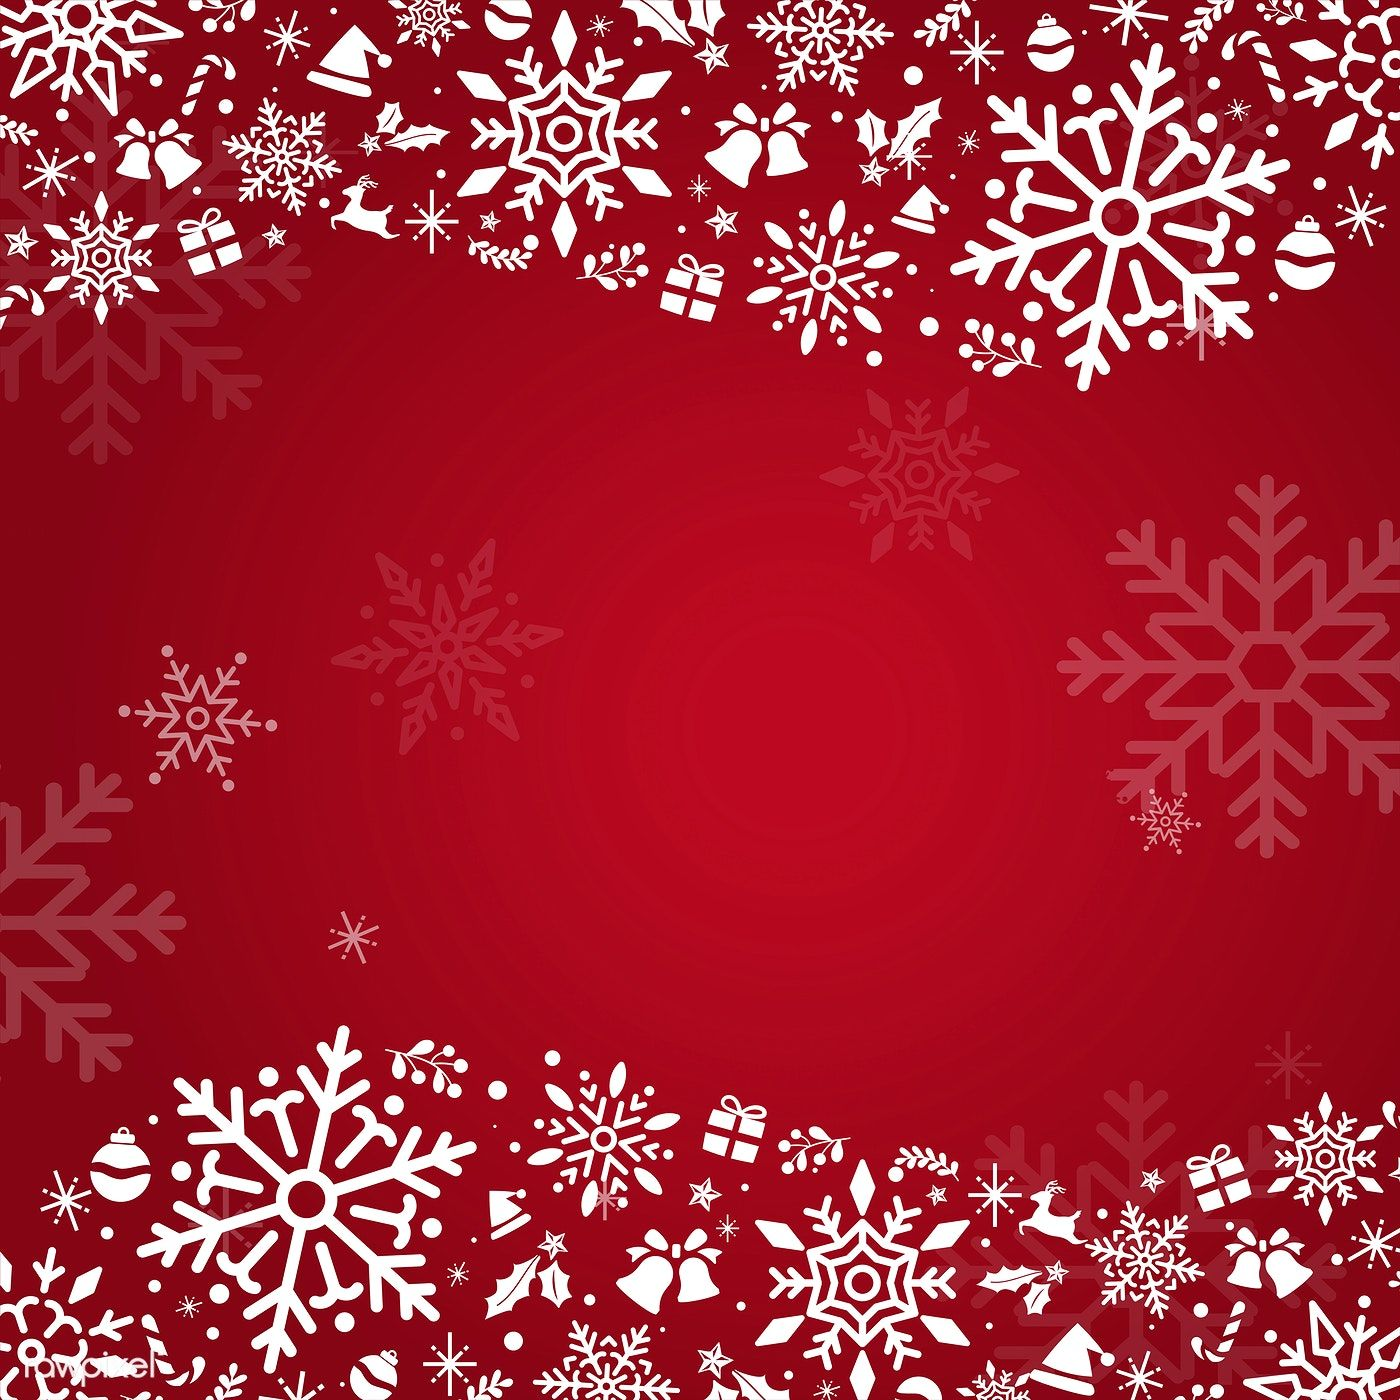 Red Christmas winter holiday background with snowflake